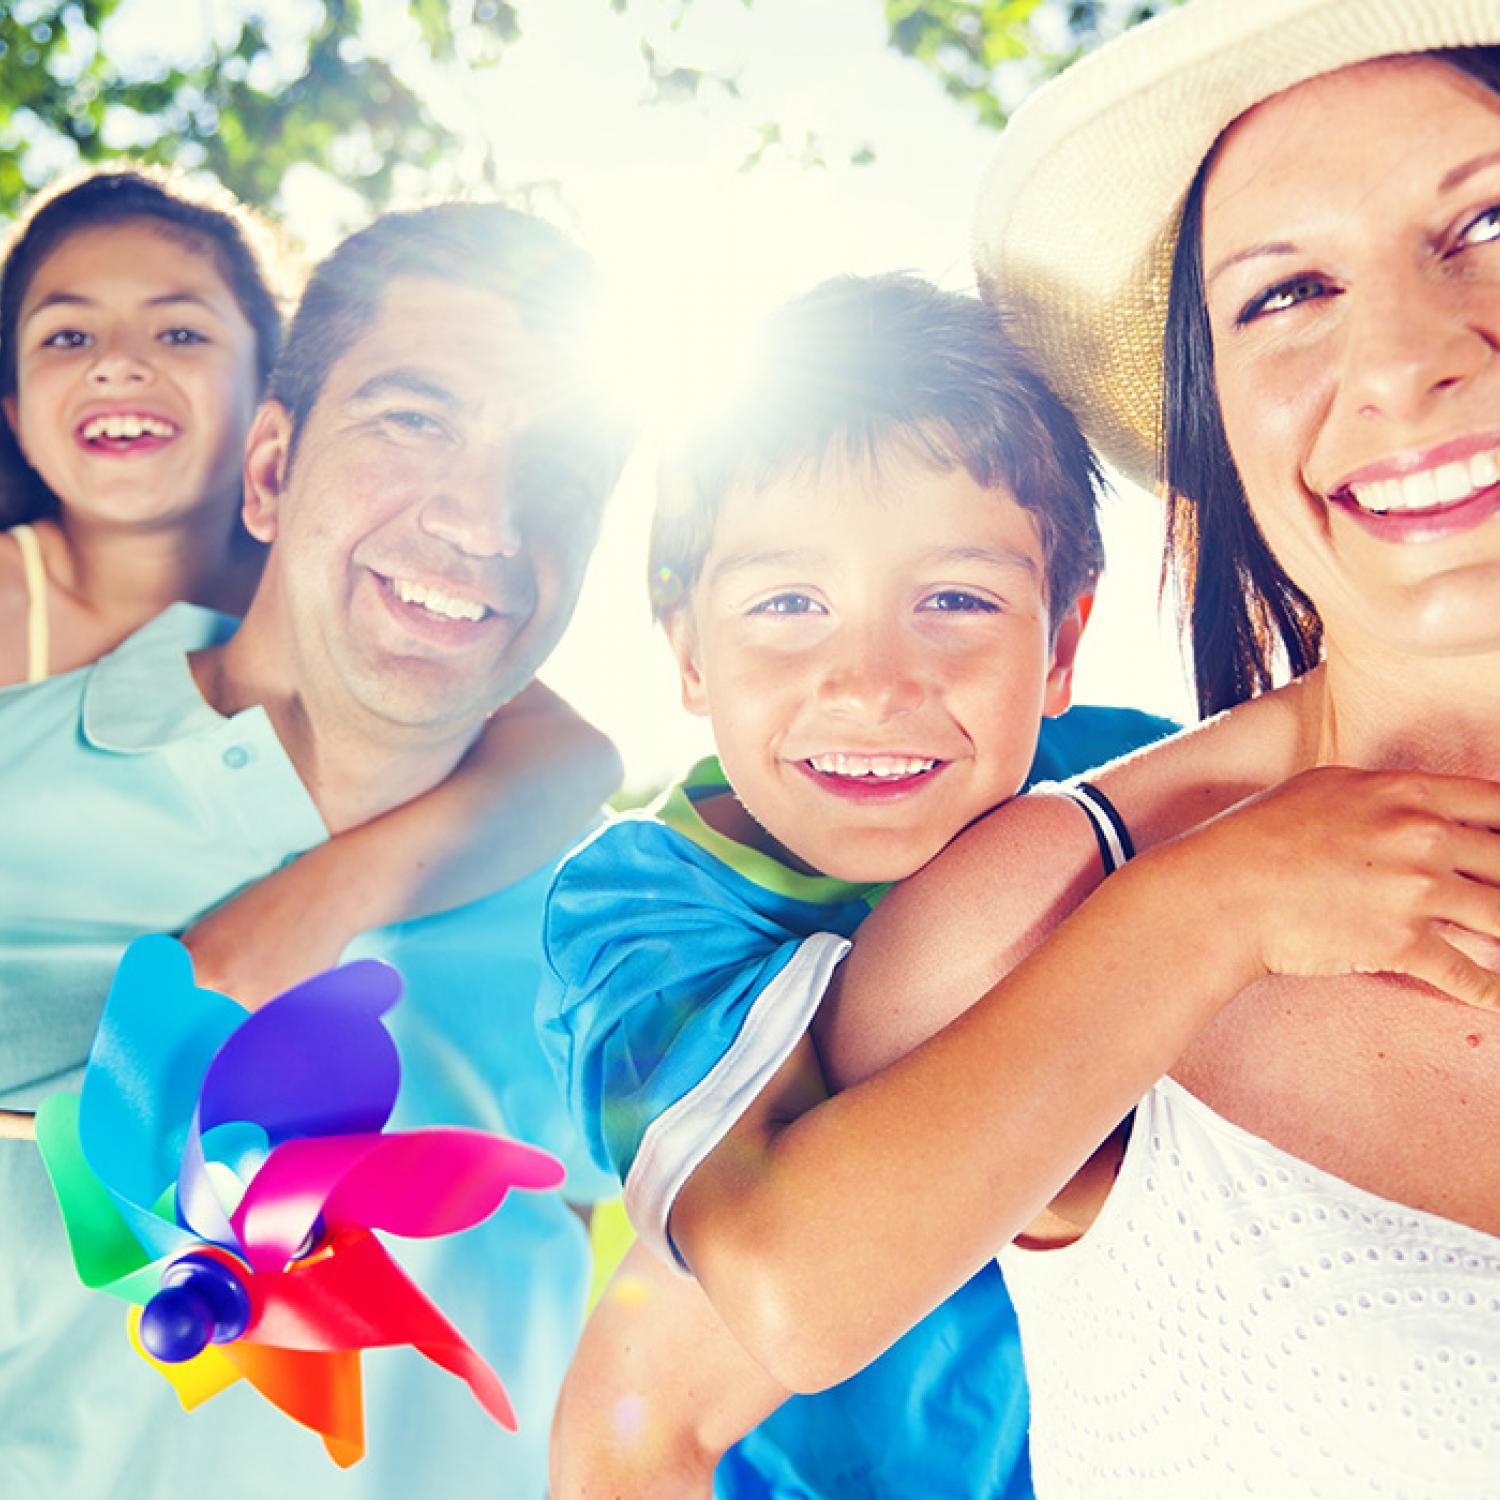 101 Fun Things To Do in the Summer | Parenting